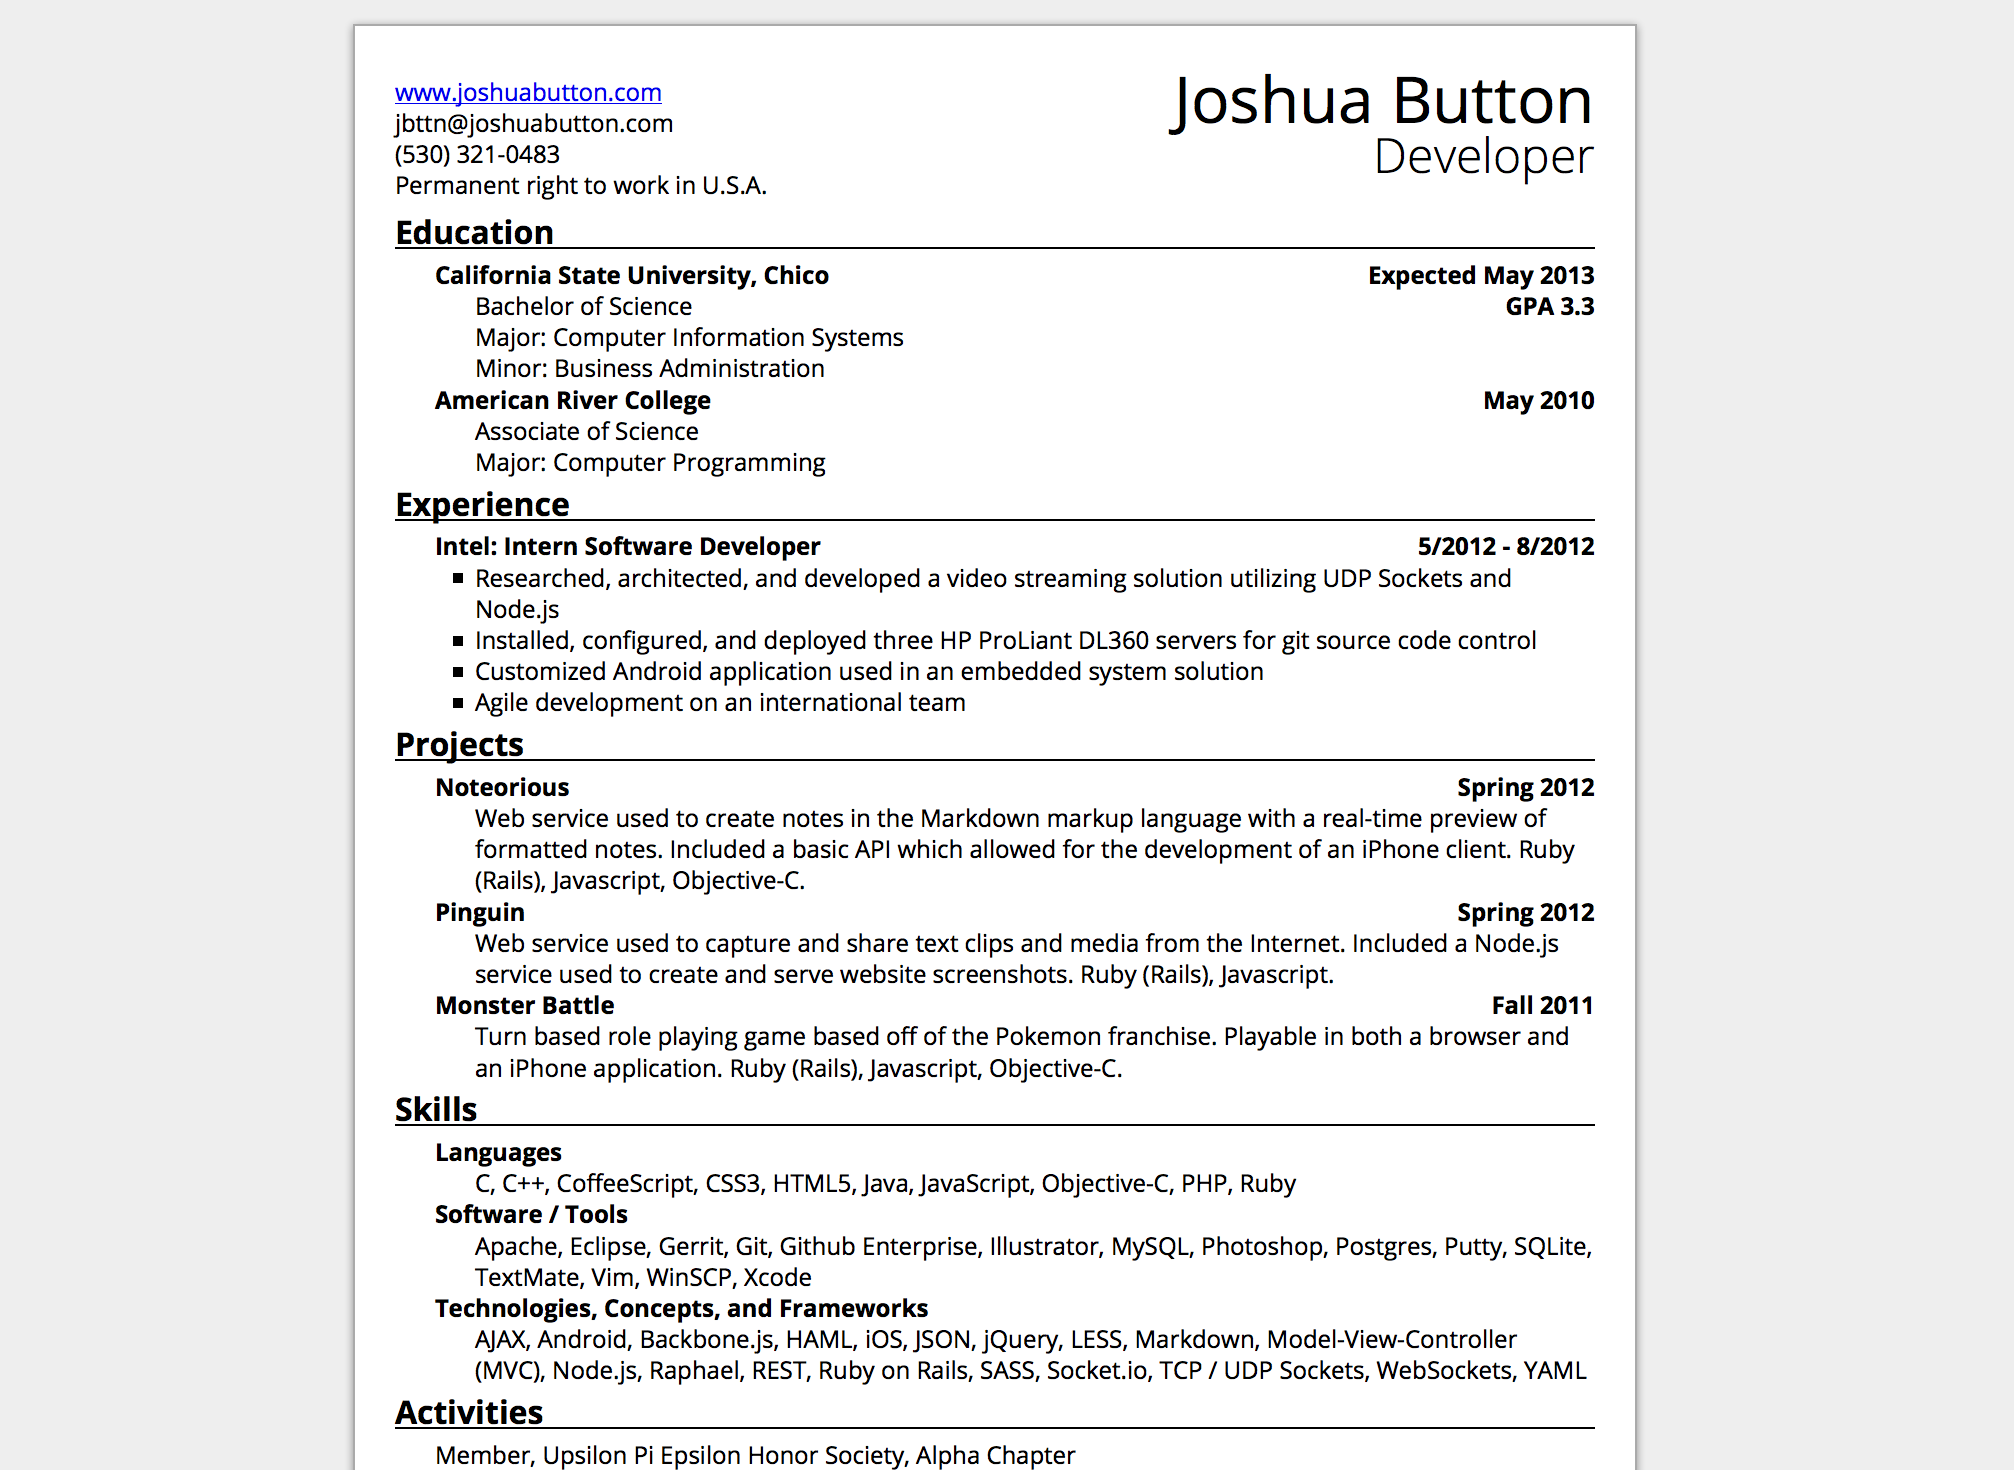 Version 1 of resume